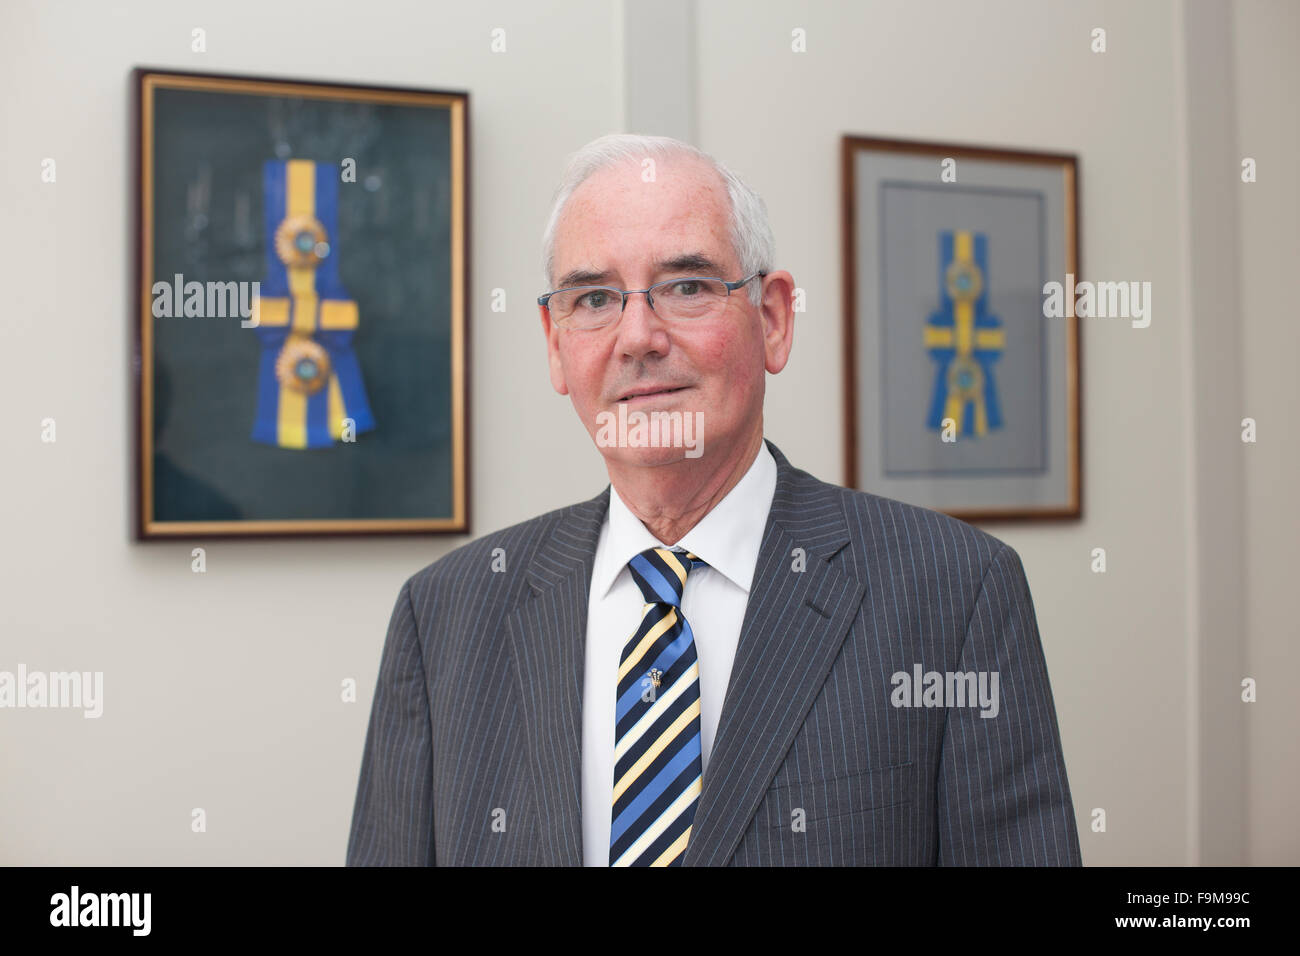 David V Thomas, Former Crown Jeweller, to the British Royal Family, responsible for the Crown Jewells and jewellery - Stock Image